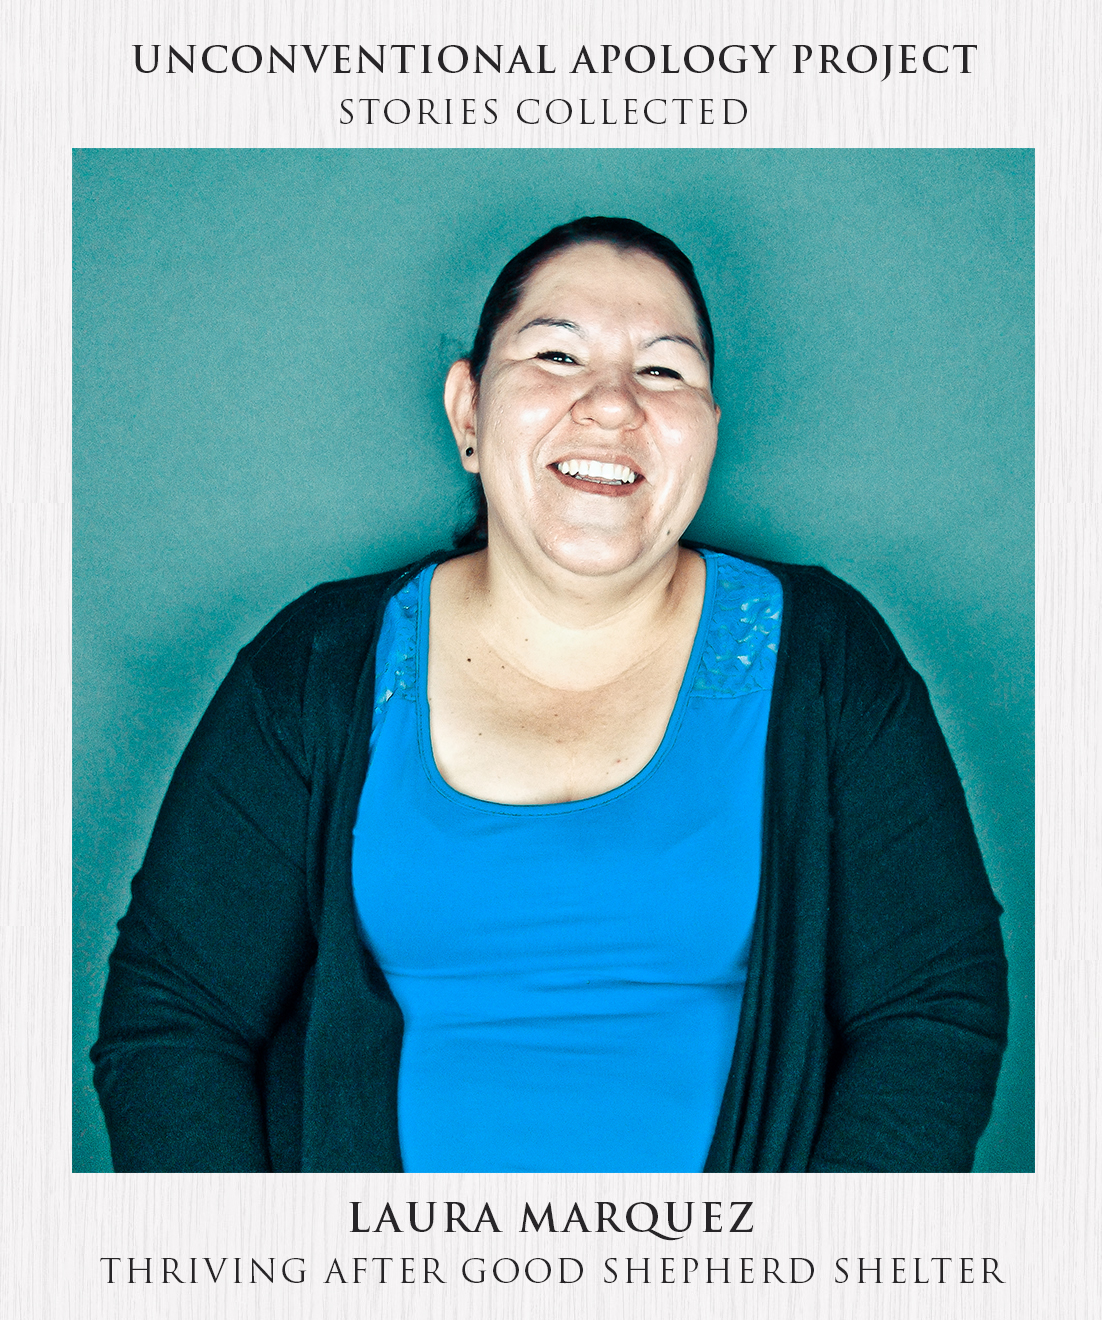 Laura Marquez in Stories Collected